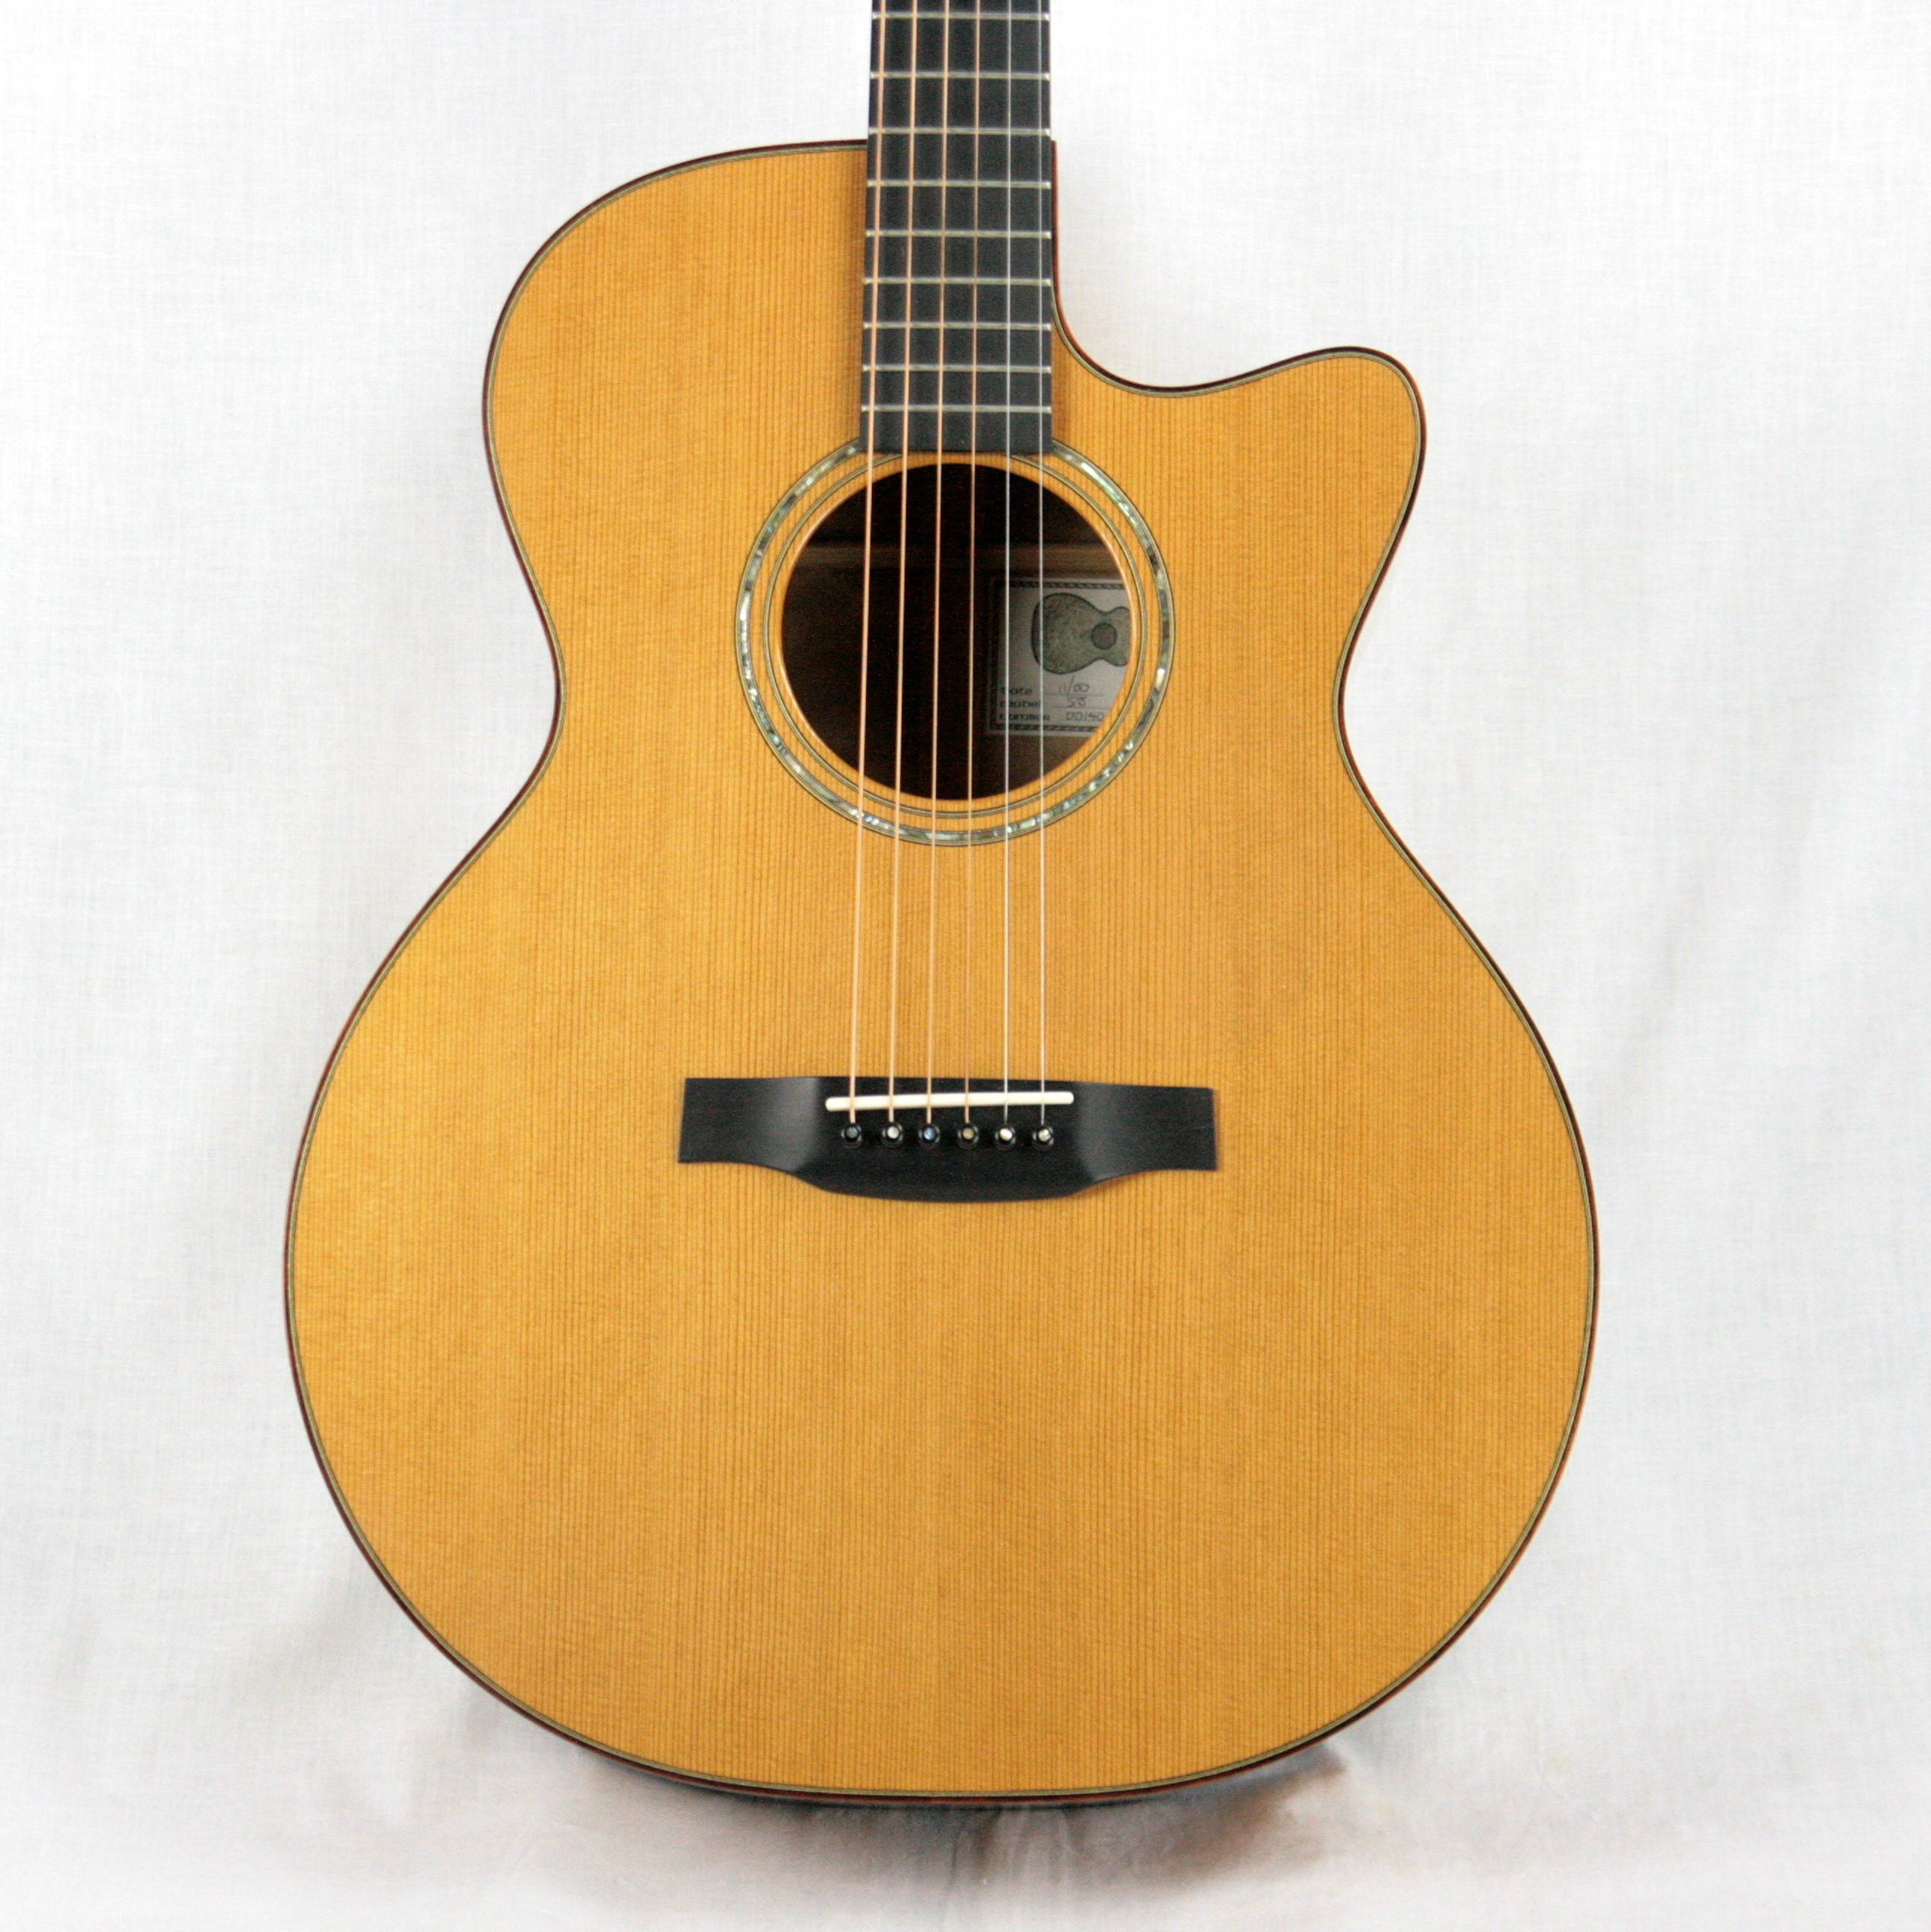 2000 Michael Baranik SJ Steel String Acoustic Guitar CX Cedar Top/Quilted Maple